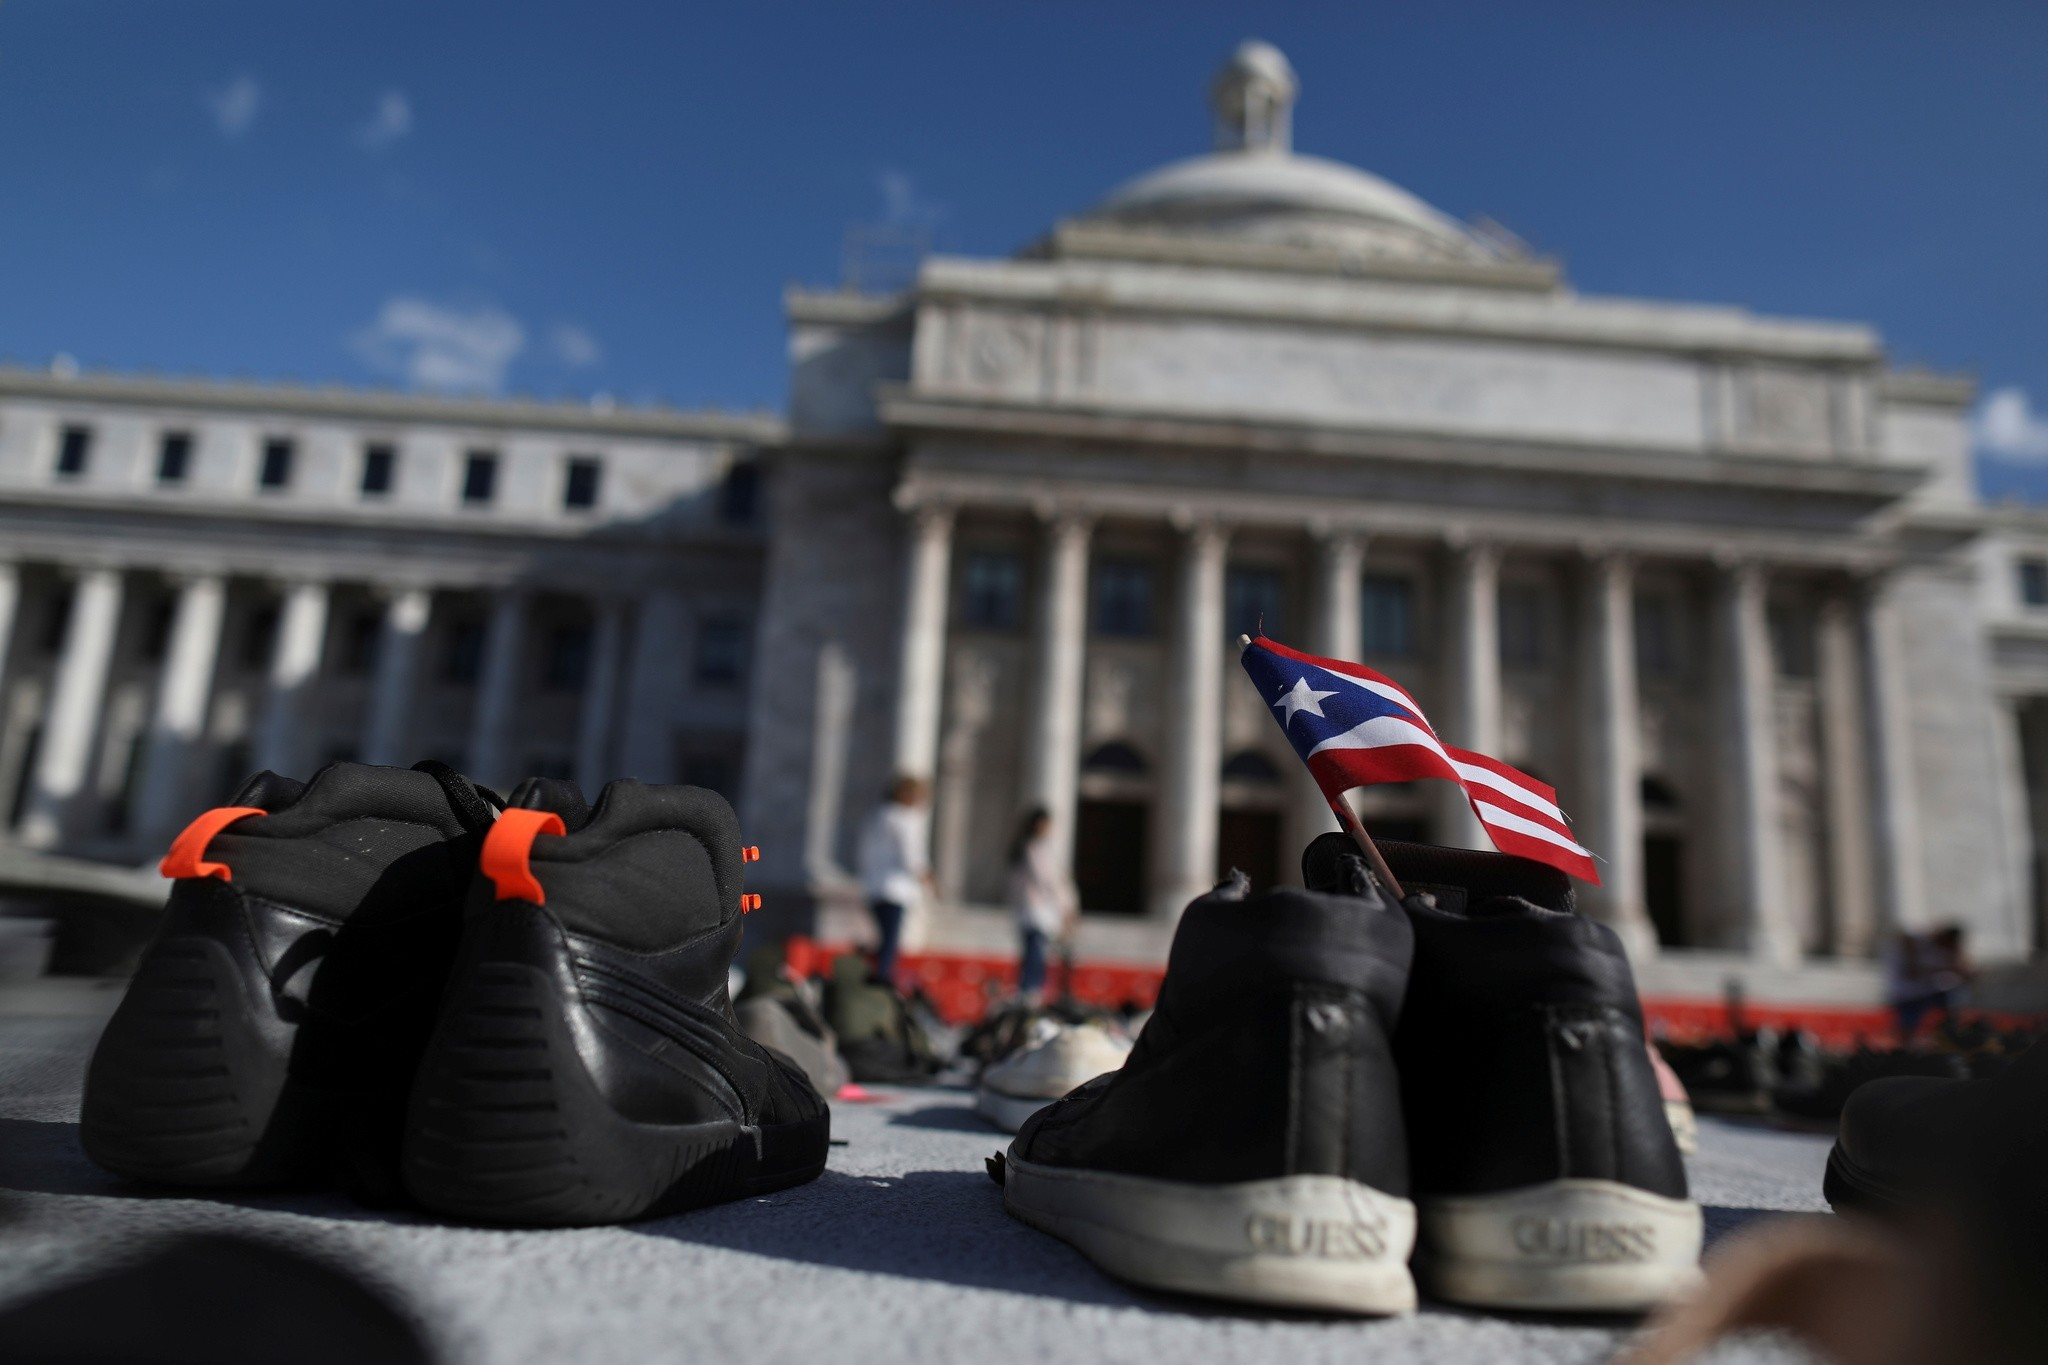 A Puerto Rican flag is seen on a pair of shoes as hundreds of pairs of shoes displayed at the Capitol to pay tribute to Hurricane Maria's victims, in San Juan, Puerto Rico June 1, 2018. (Reuters Photo)